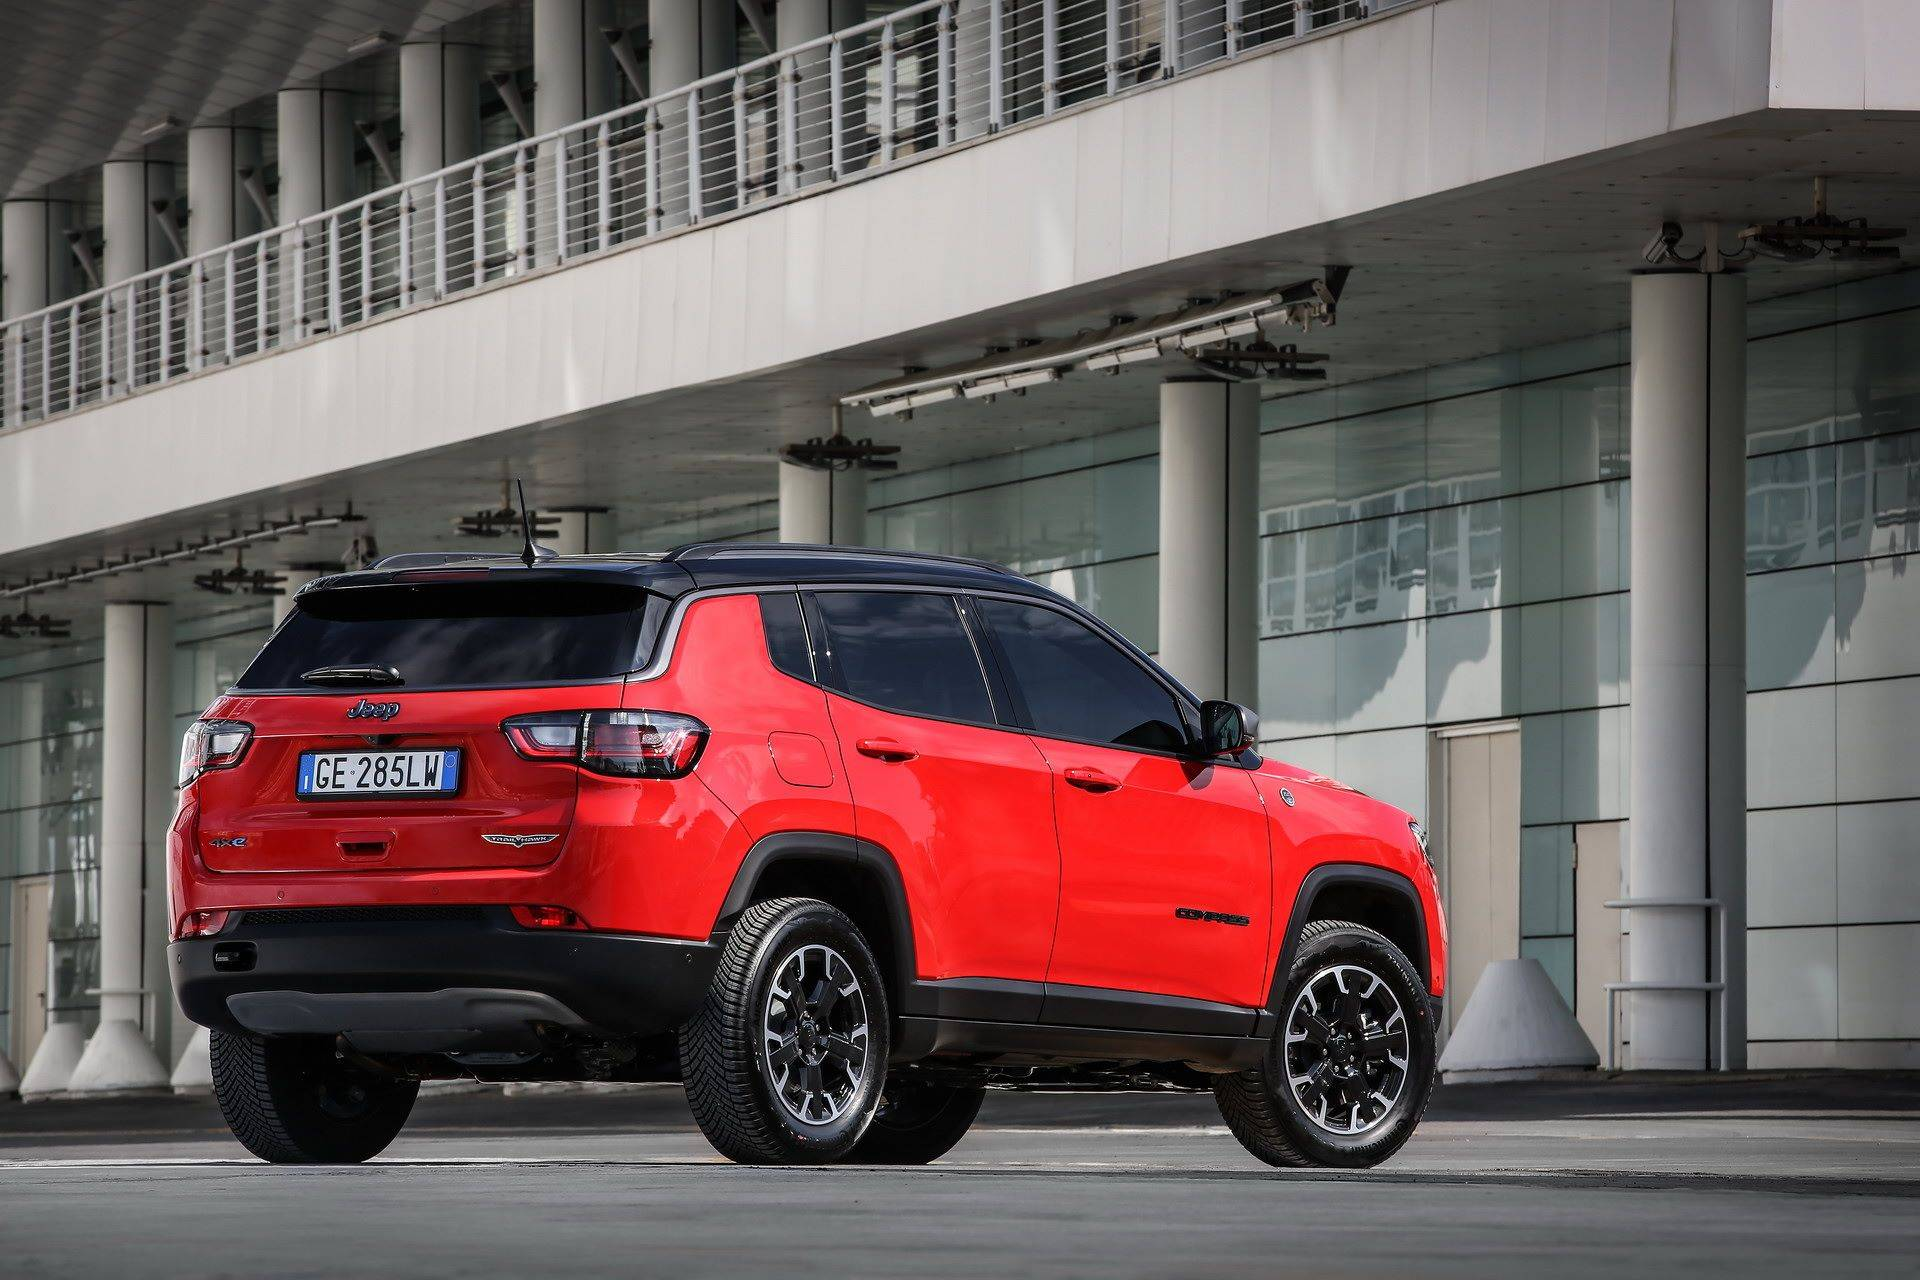 Jeep-Compass-facelift-2021-8